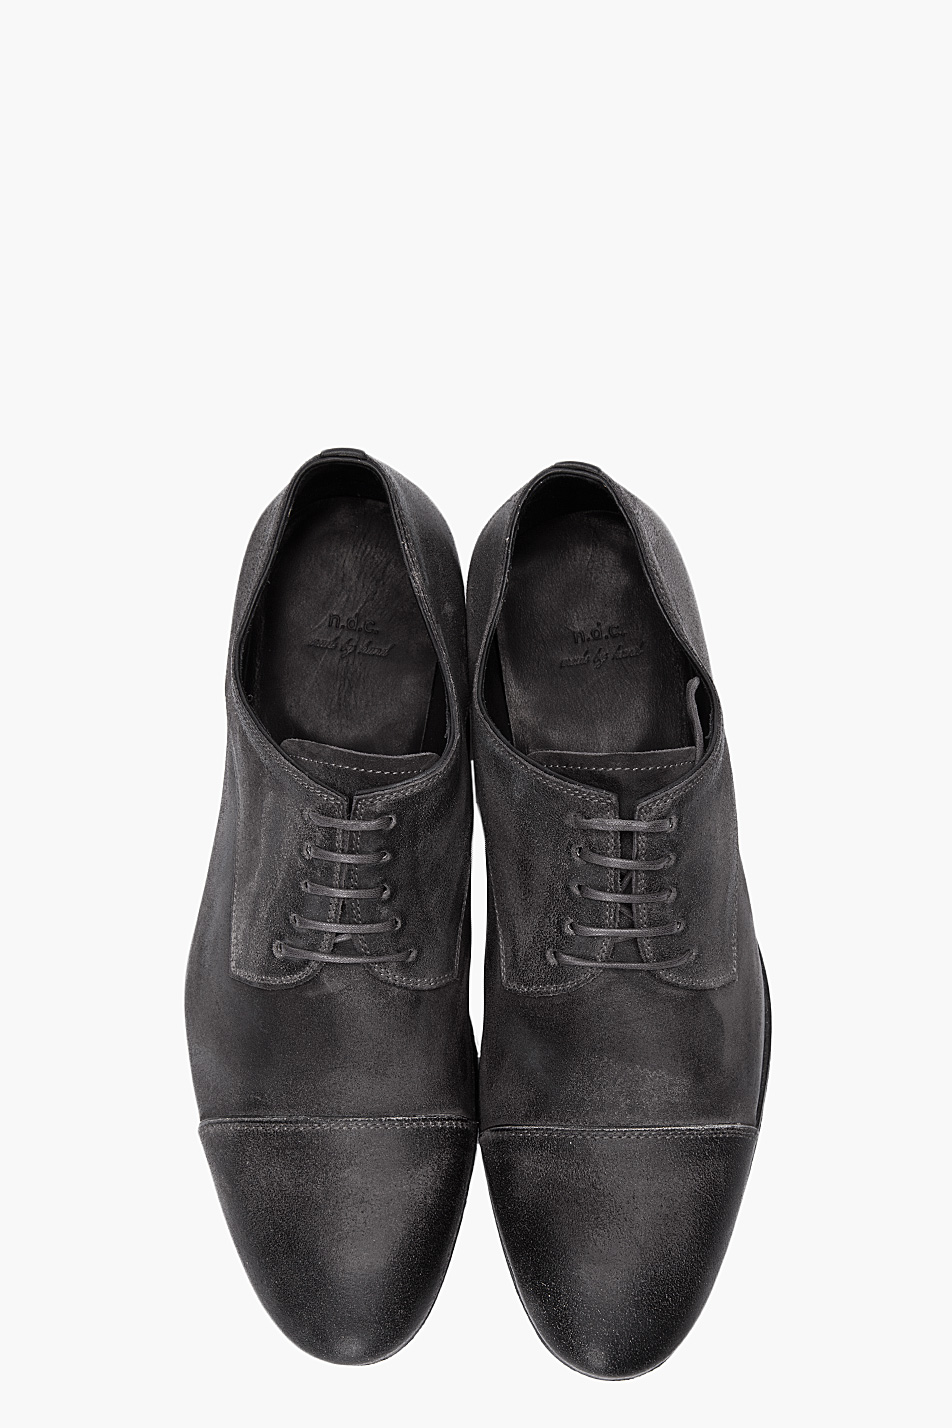 Lyst Ndc Charcoal Distressed Leather Derby Dress Shoes